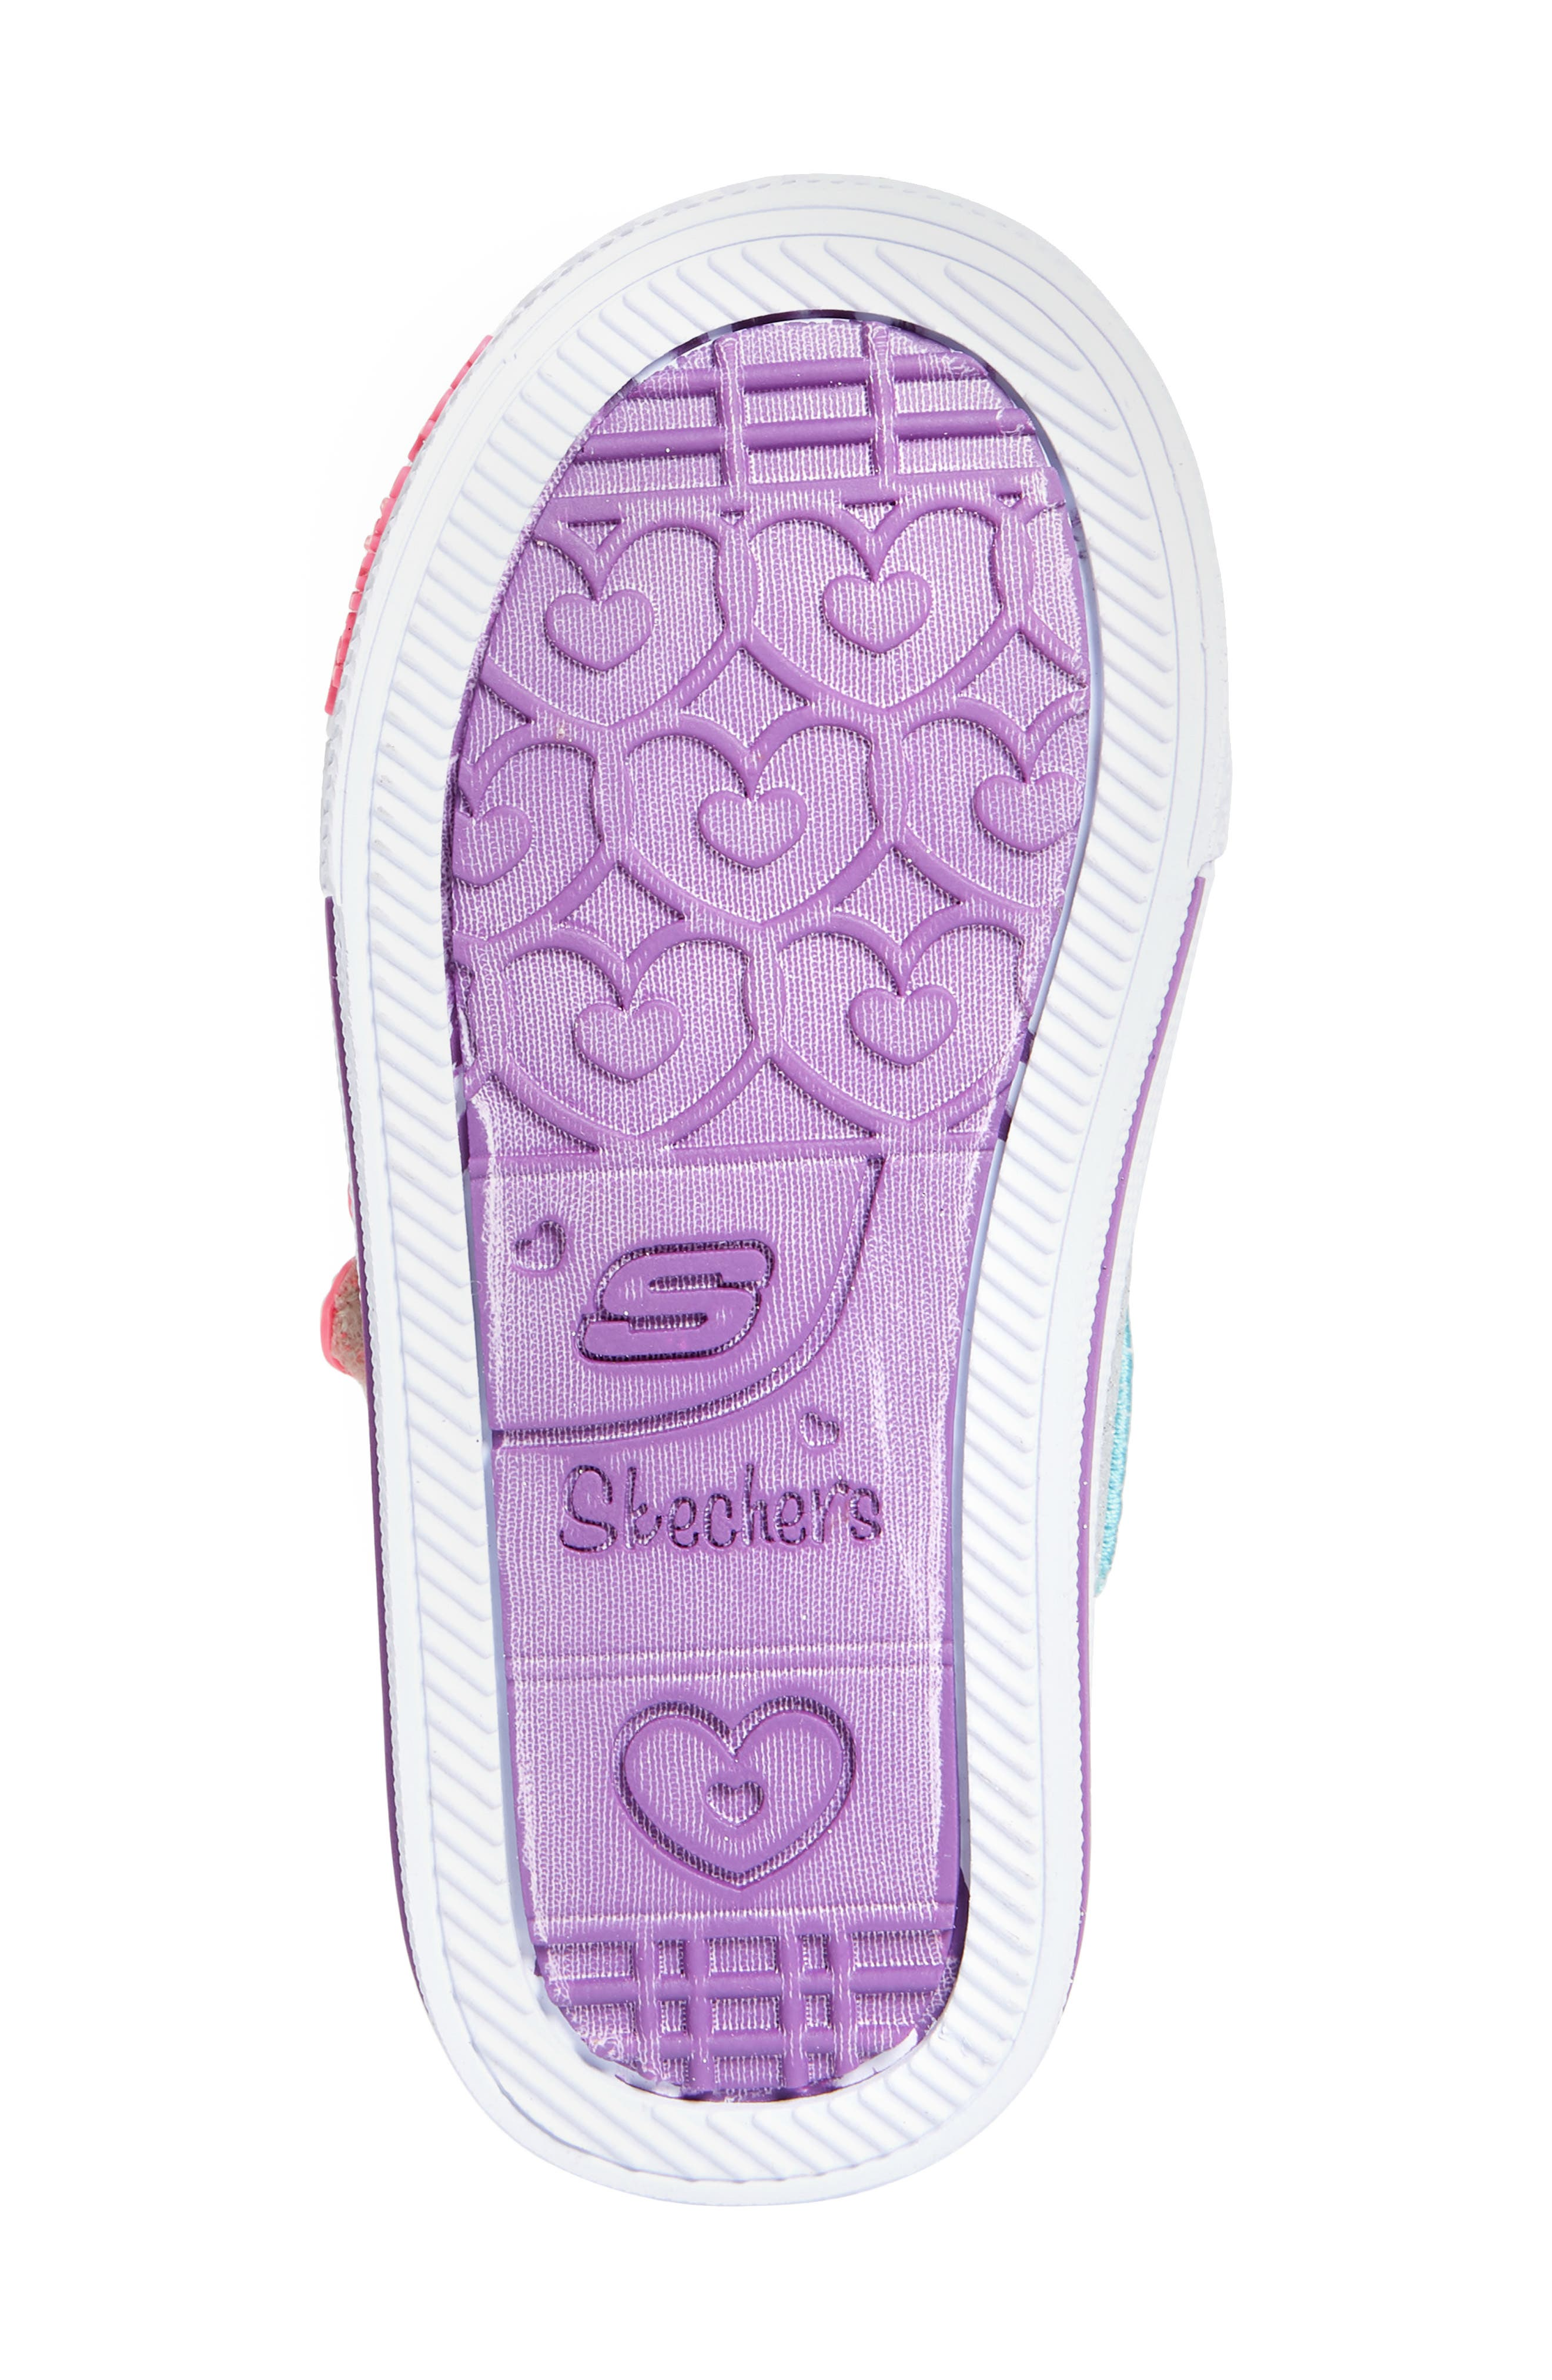 Shuffles - Party Pets Sneaker,                             Alternate thumbnail 6, color,                             040